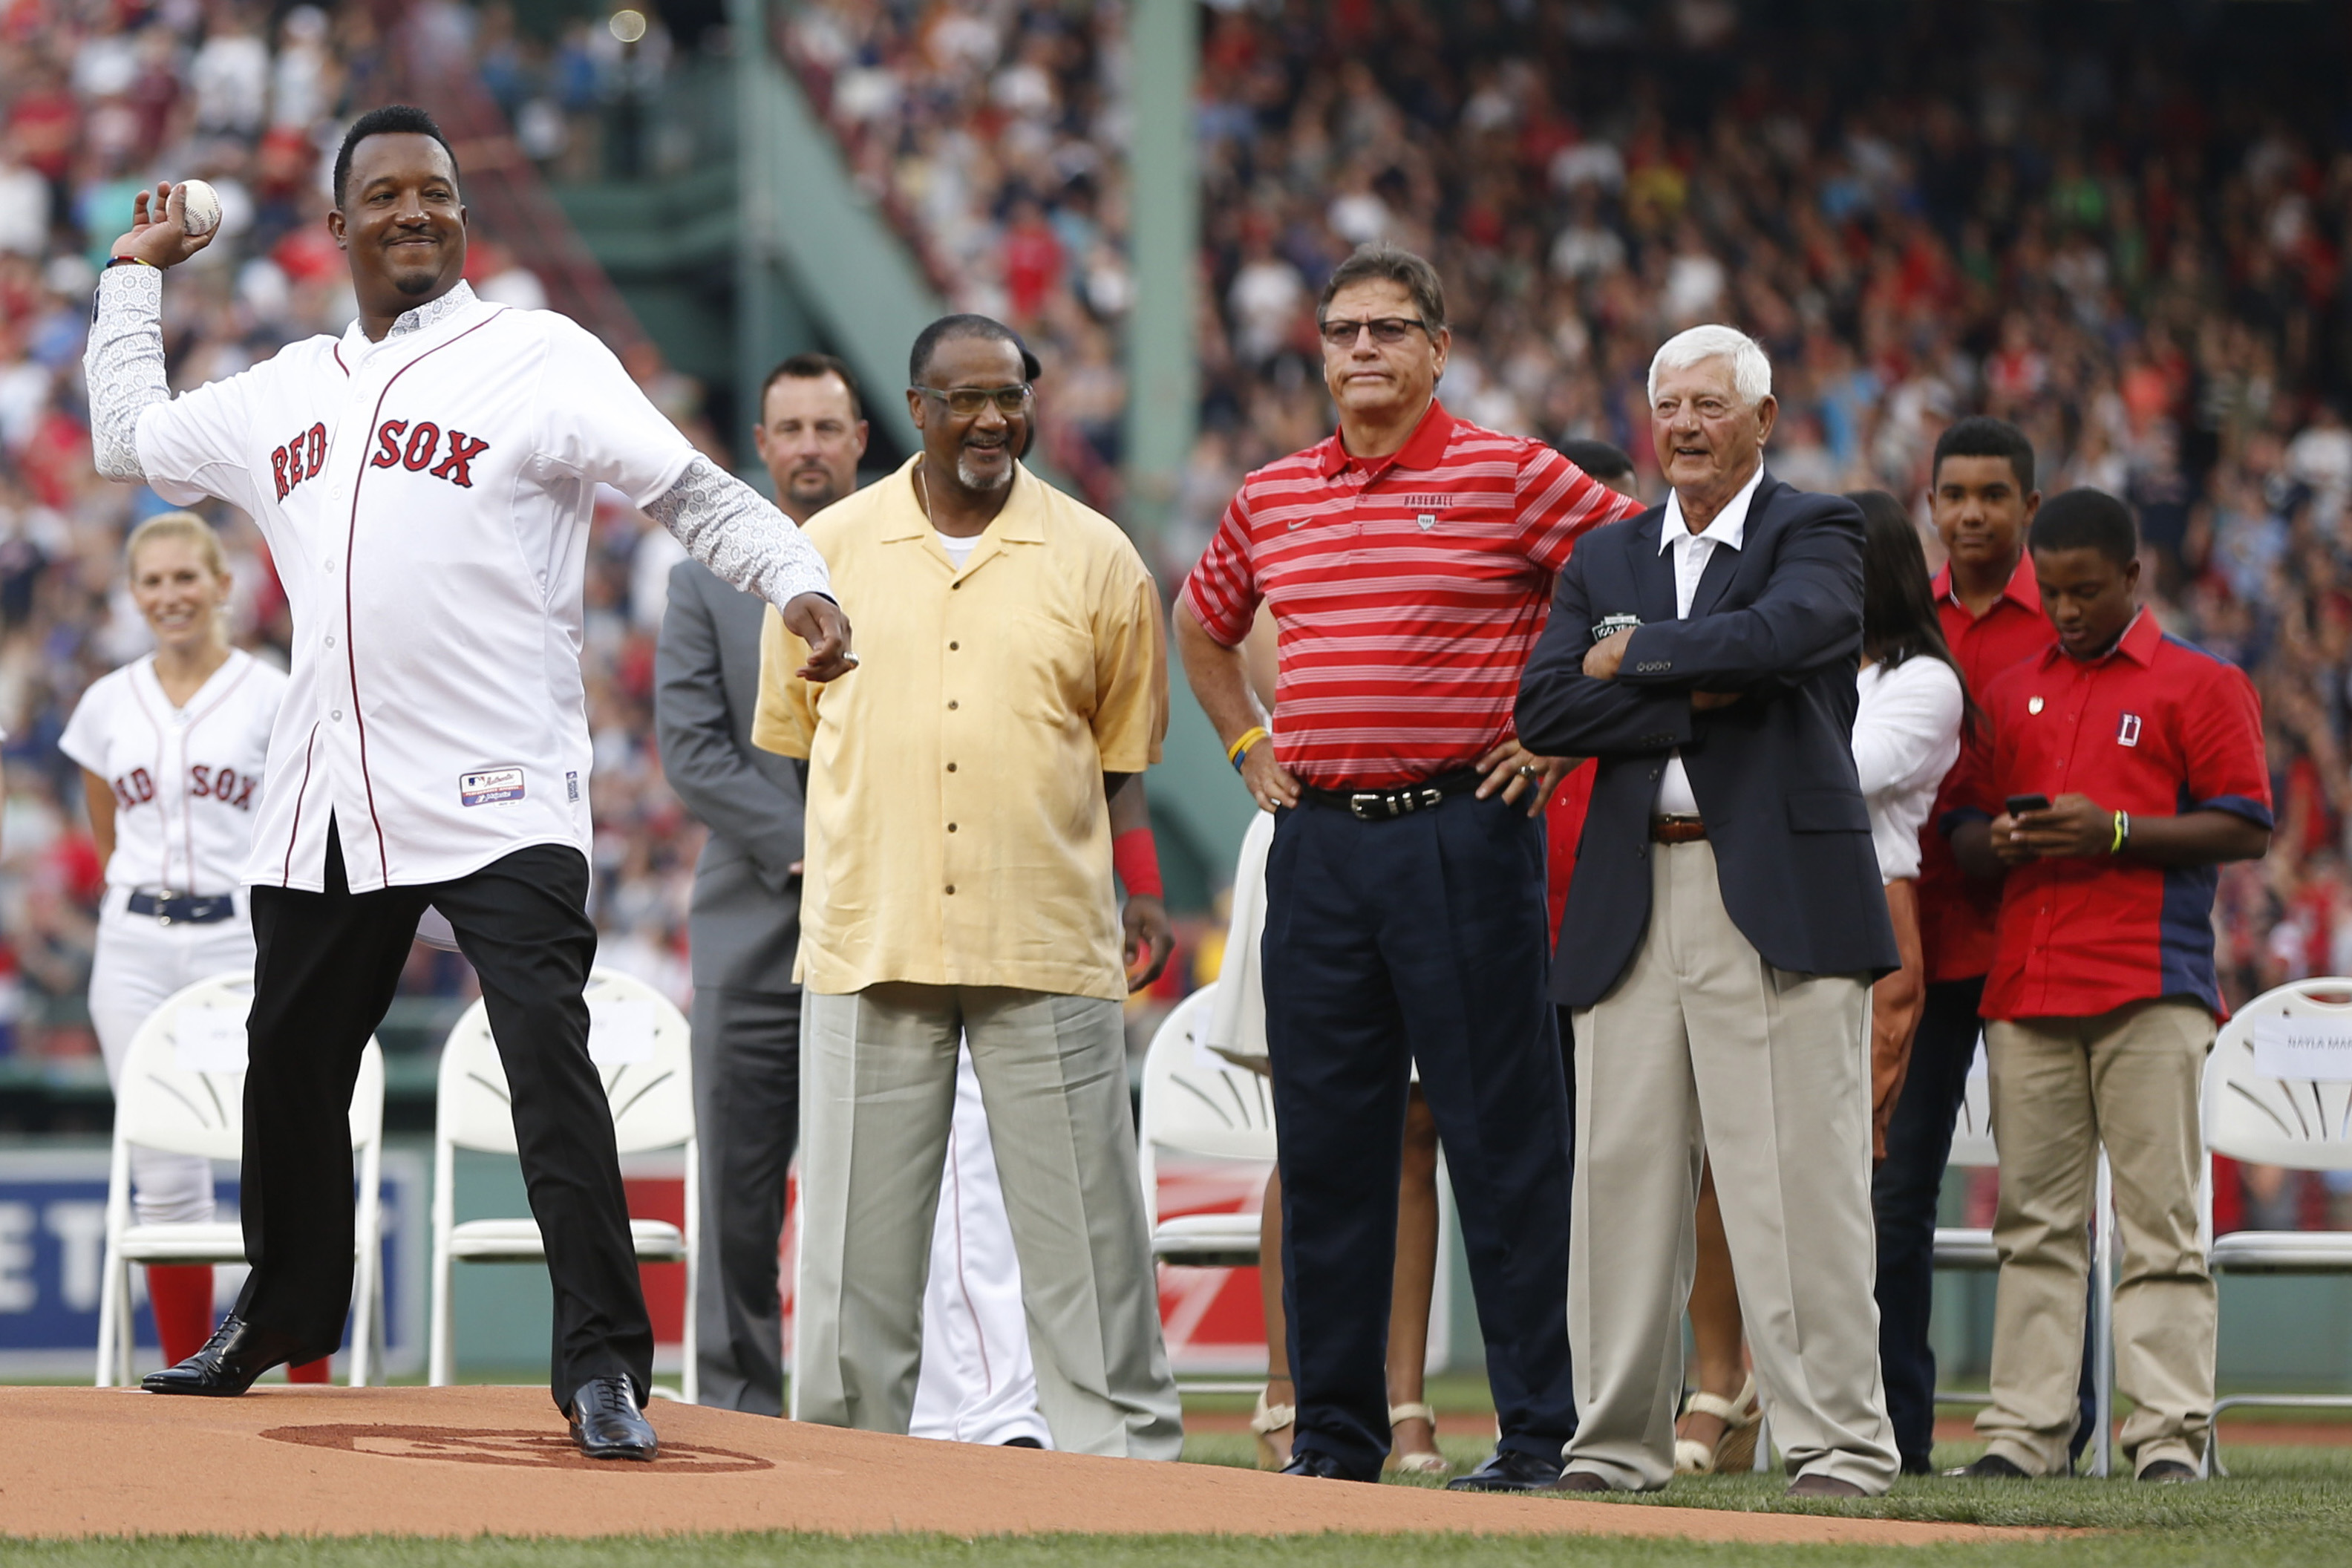 Jul 28, 2015; Boston, MA, USA; Hall of Fame player Pedro Martinez throws out the first pitch under the watchful eye of former Boston Red Sox players Tim Wakefield, (left) Jim Rice, Carlton Fisk and Carl Yastrzemsk during his number retirement ceremony before the game against the Chicago White Sox at Fenway Park. Mandatory Credit: Greg M. Cooper-USA TODAY Sports